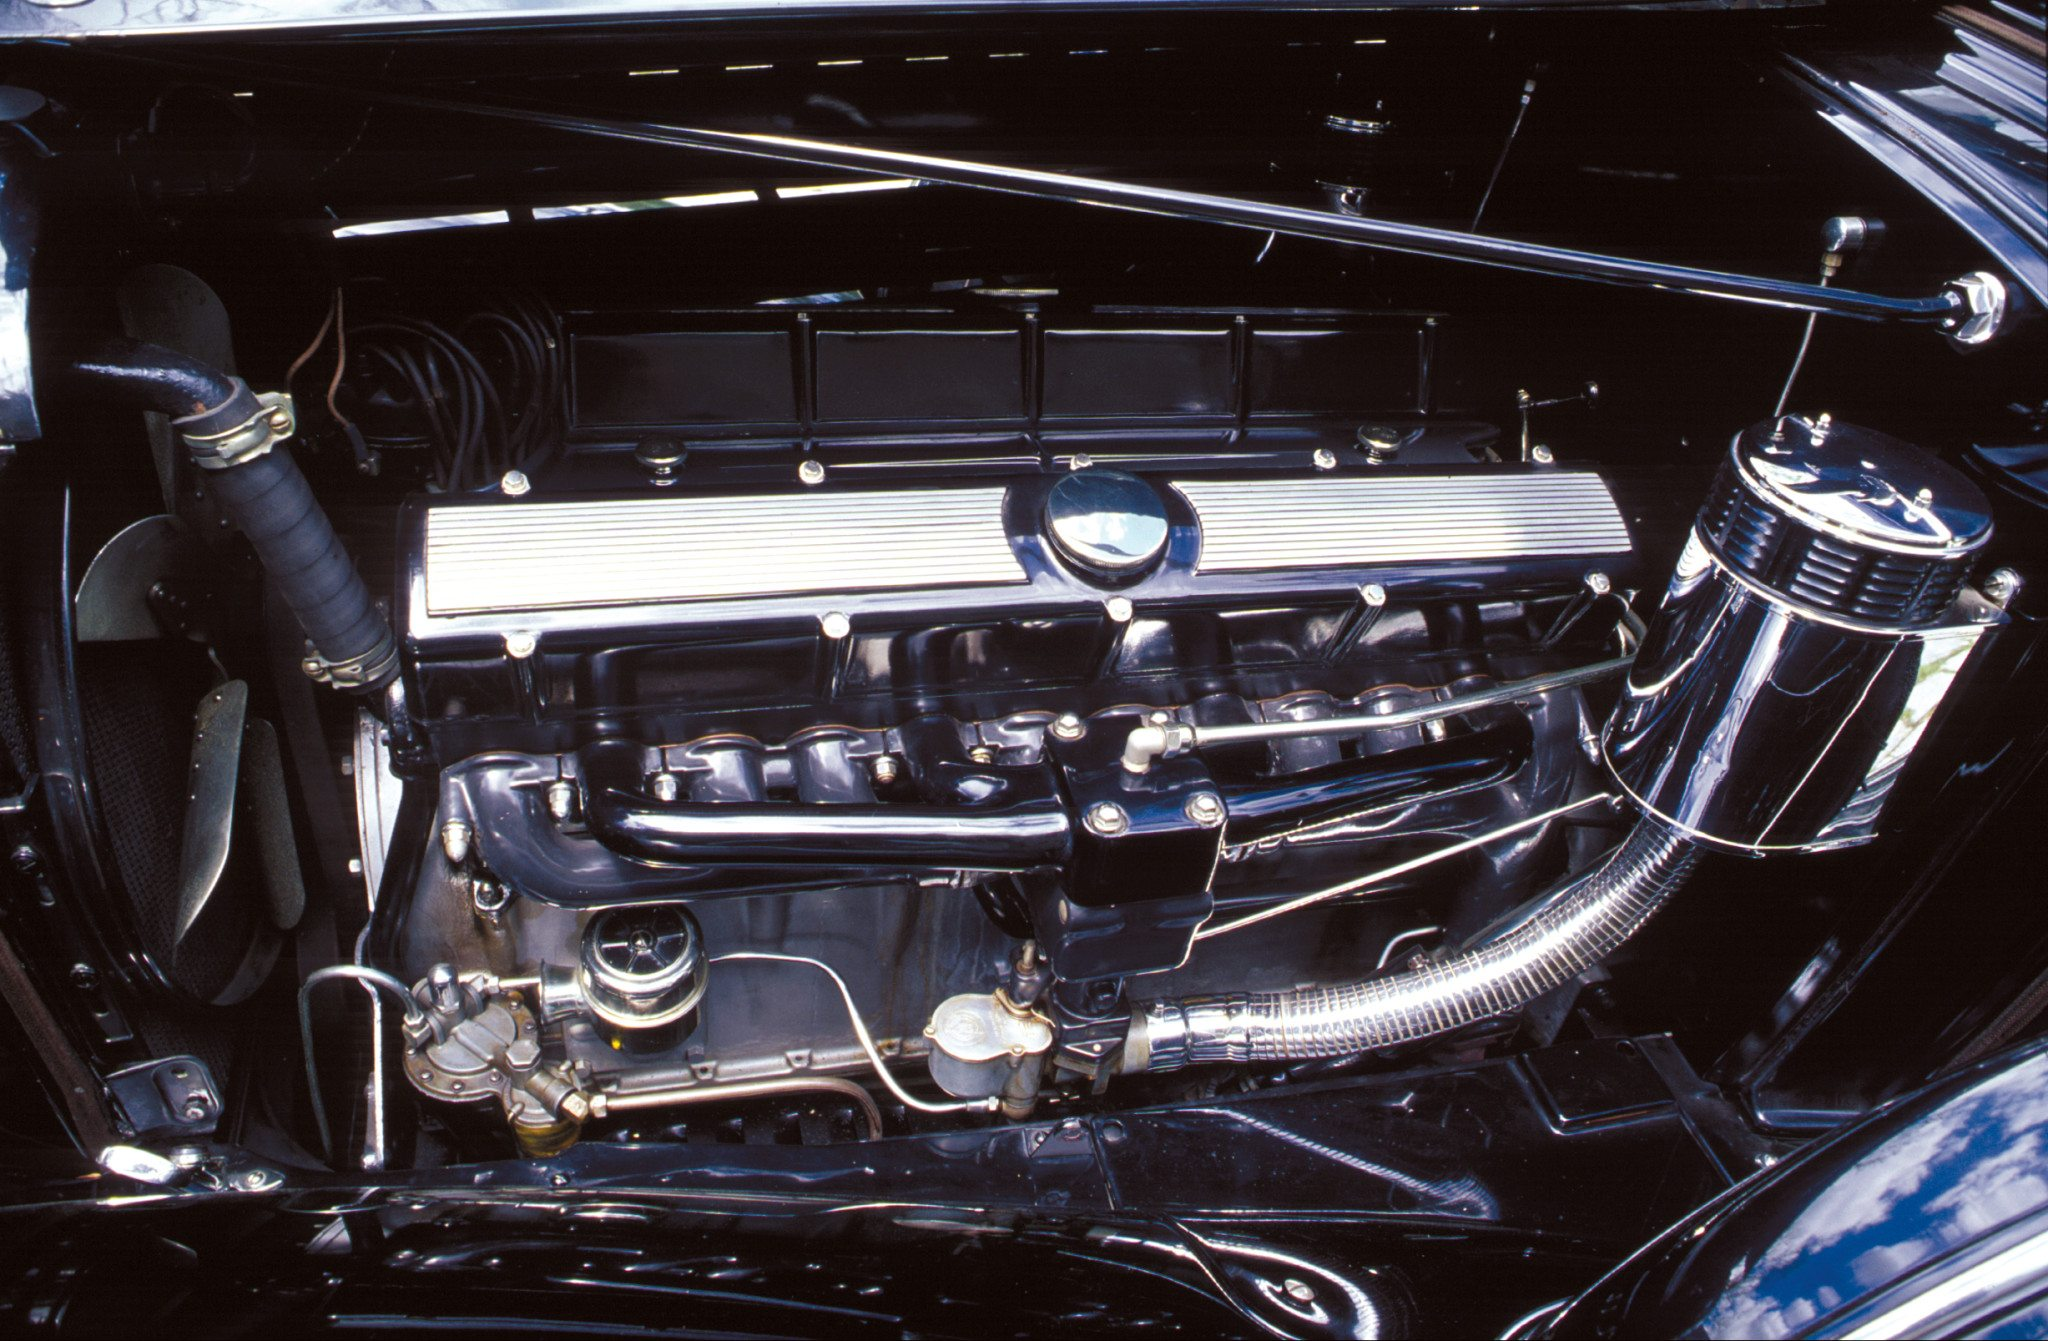 V16 Engine Cadillac Aero-Dynamic Coupe by Fleetwood